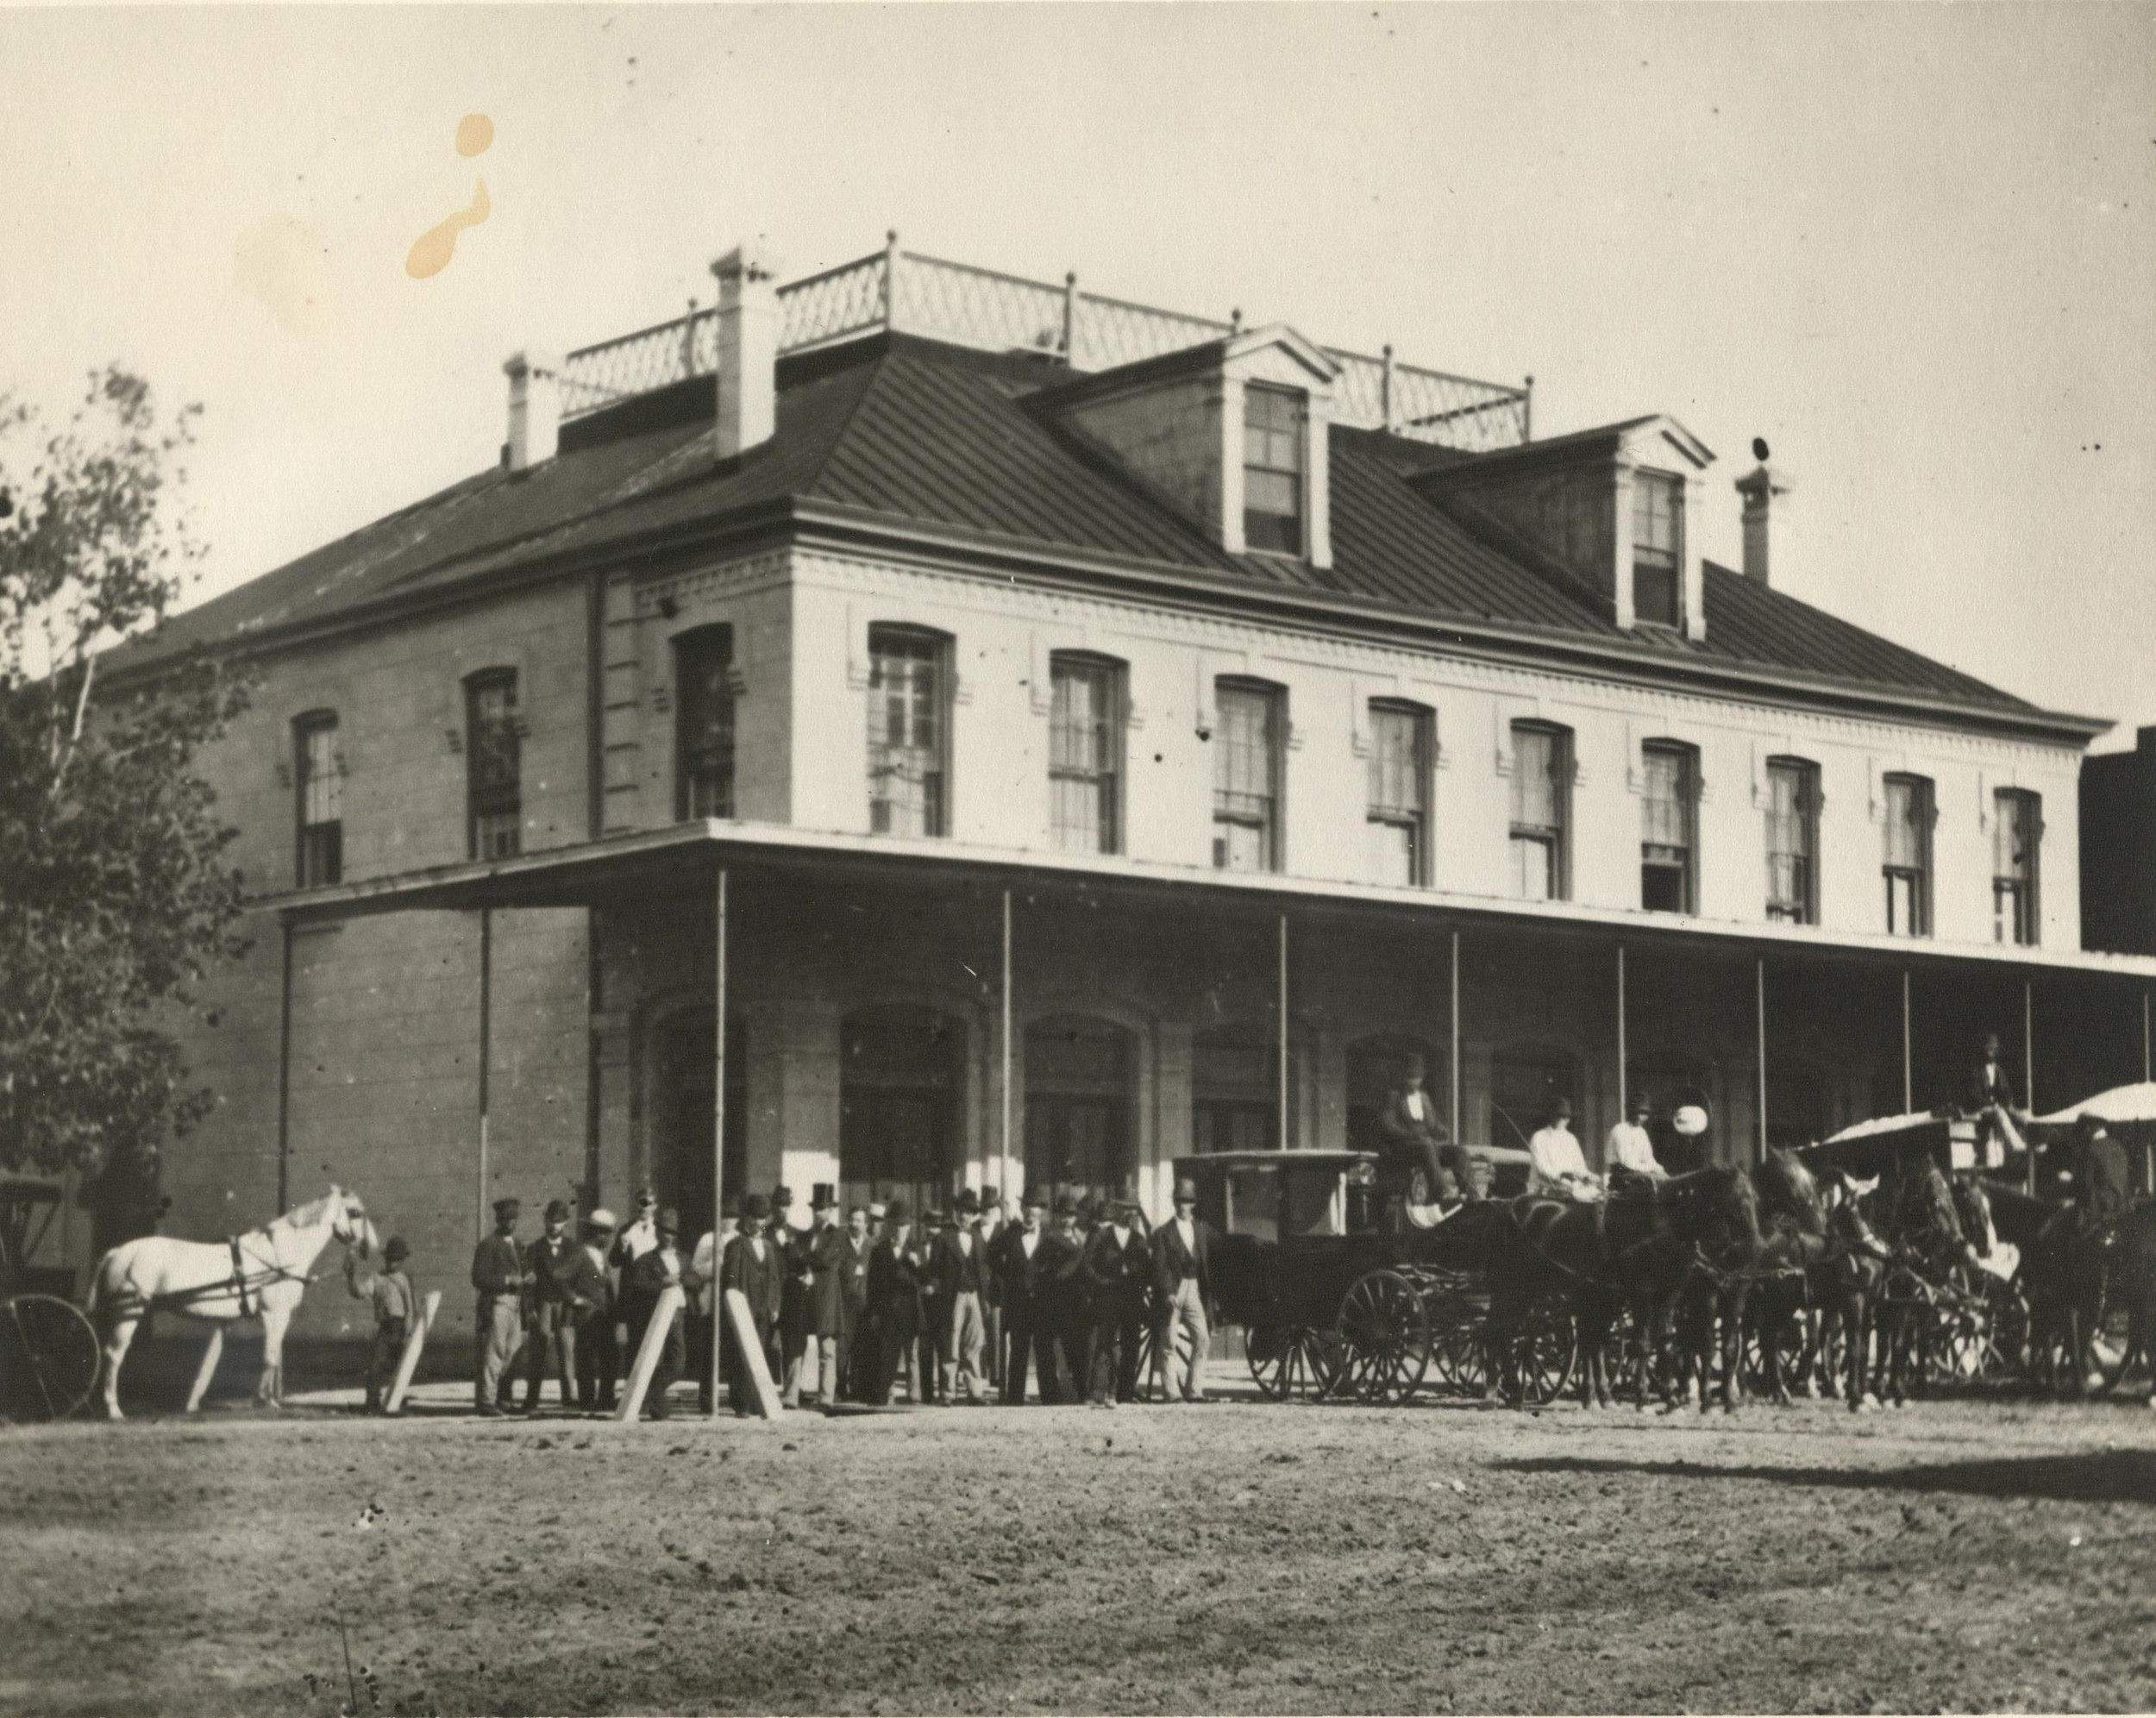 The Capitol Hotel was located in a building that first served as the capitol building for the Republic of Texas. The building stood from 1847 to 1881.  Photograph: The Heritage Society Permanent Collection